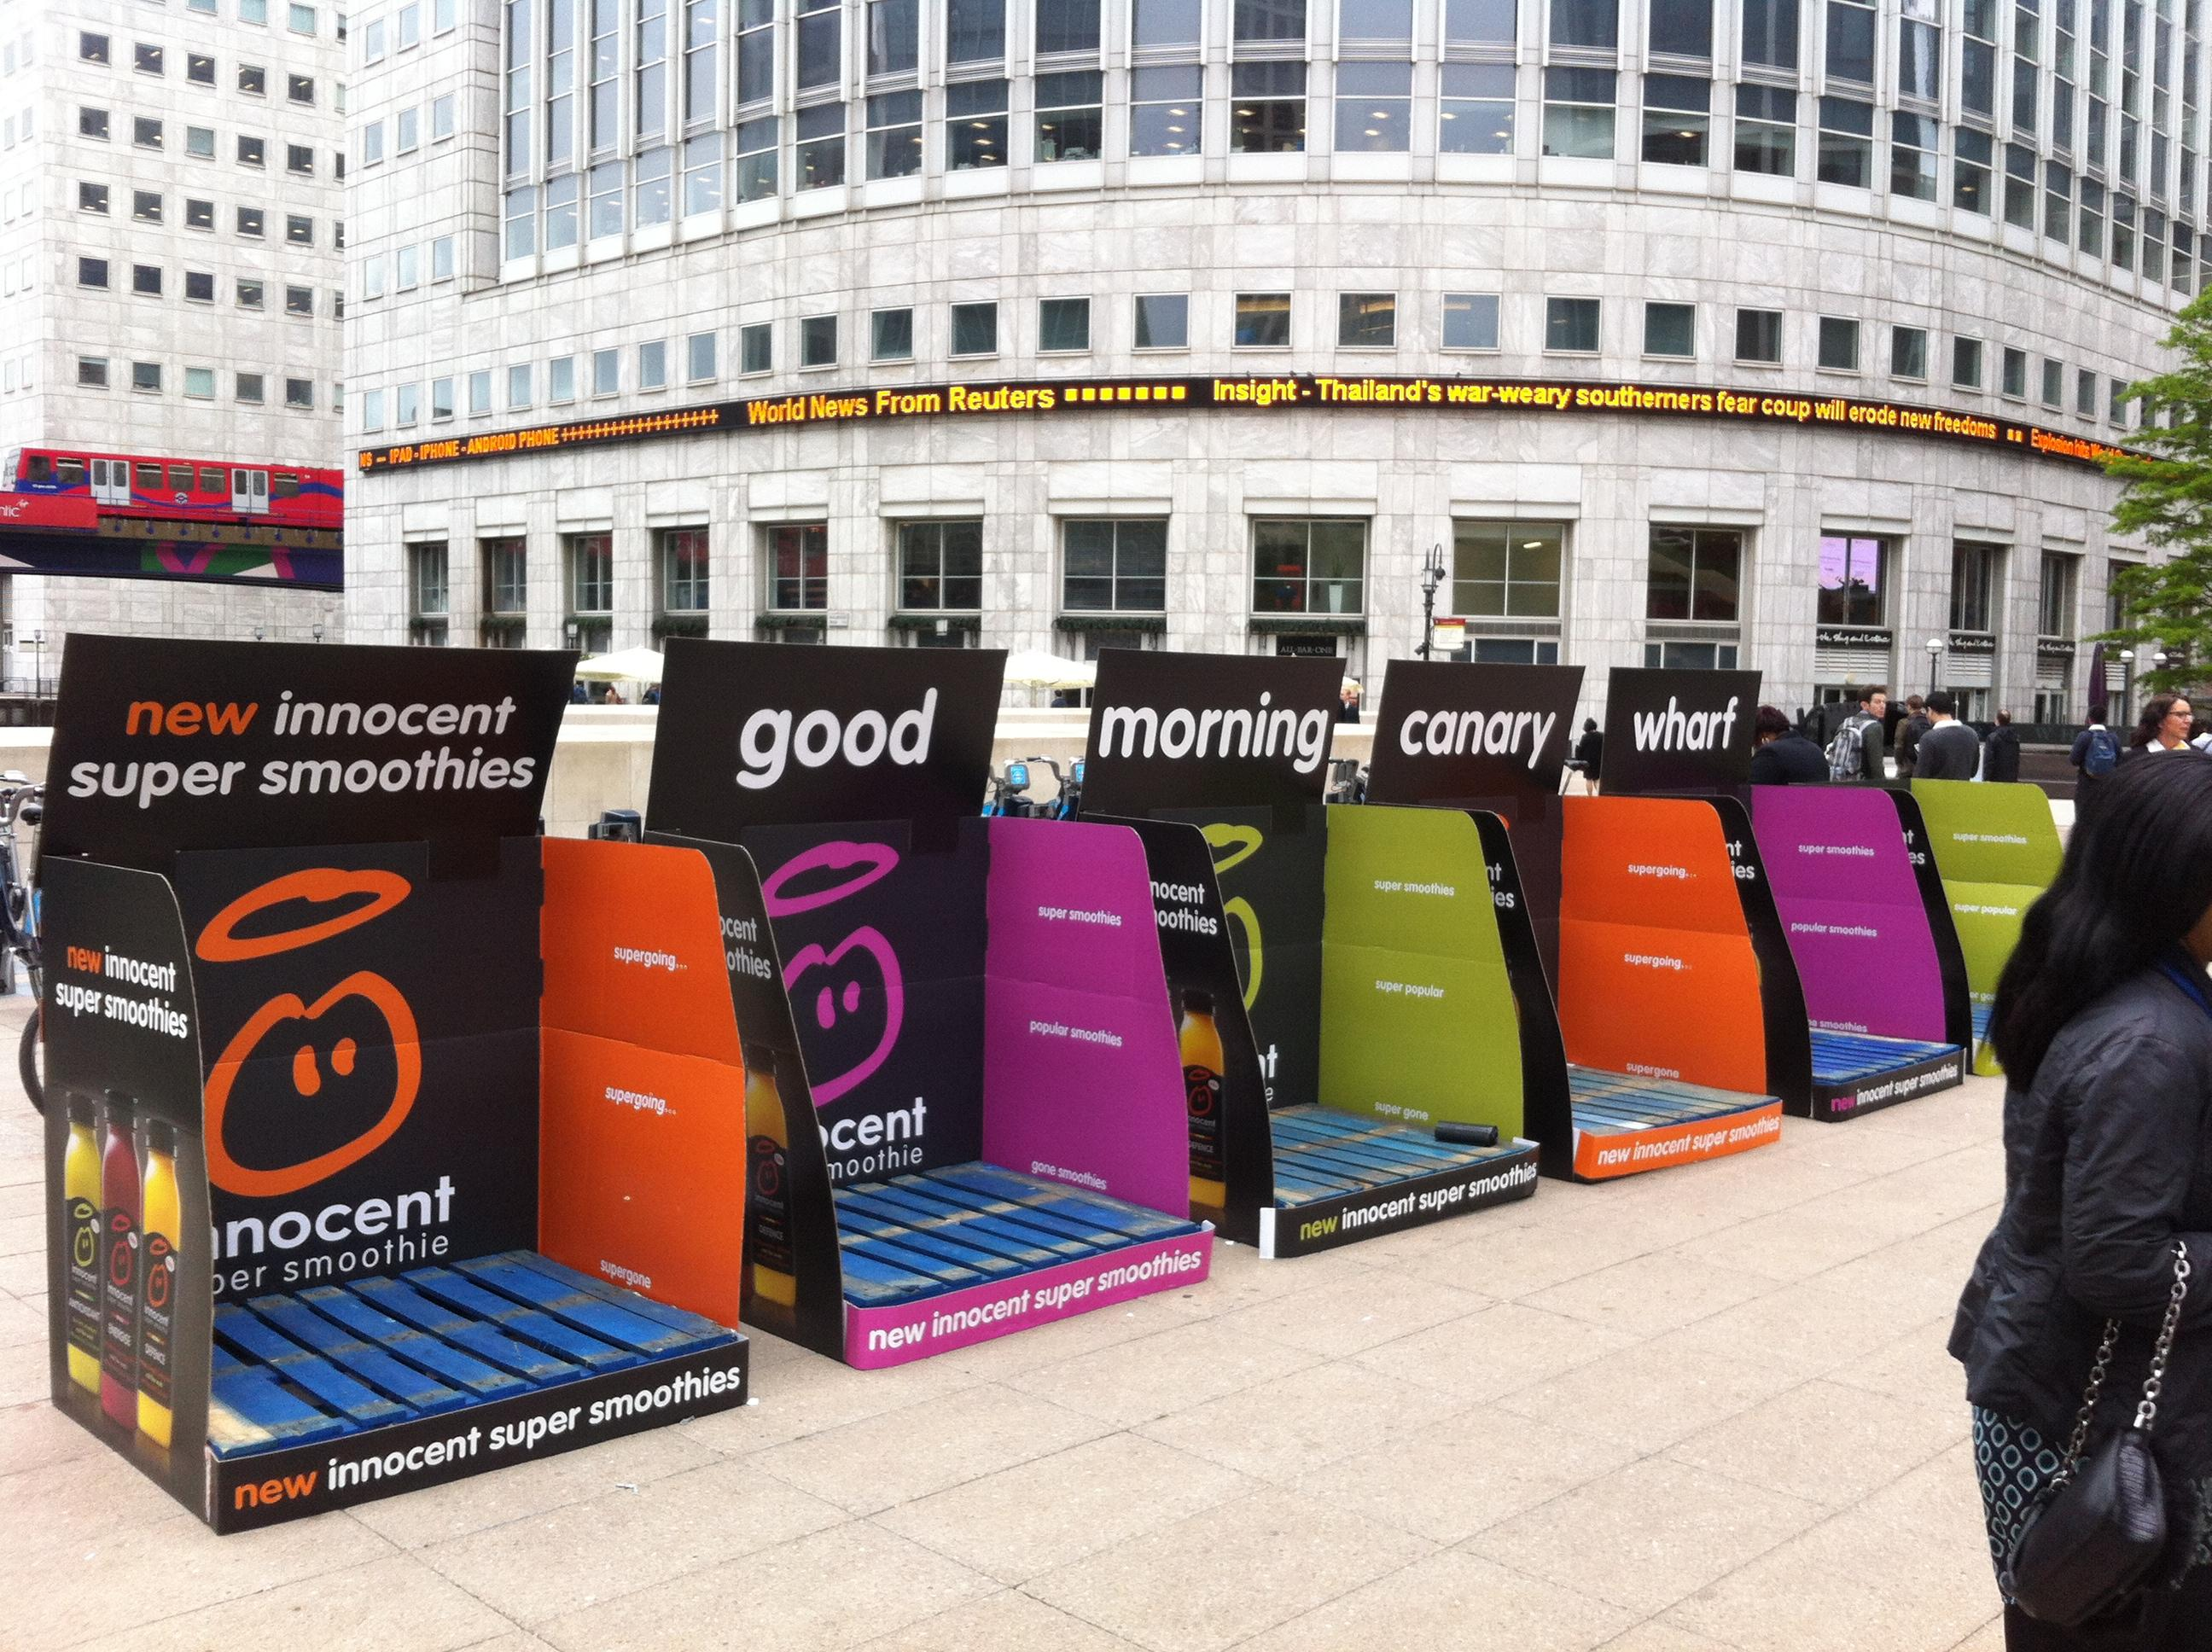 Marketing and Innocent Smoothies - Essay Example